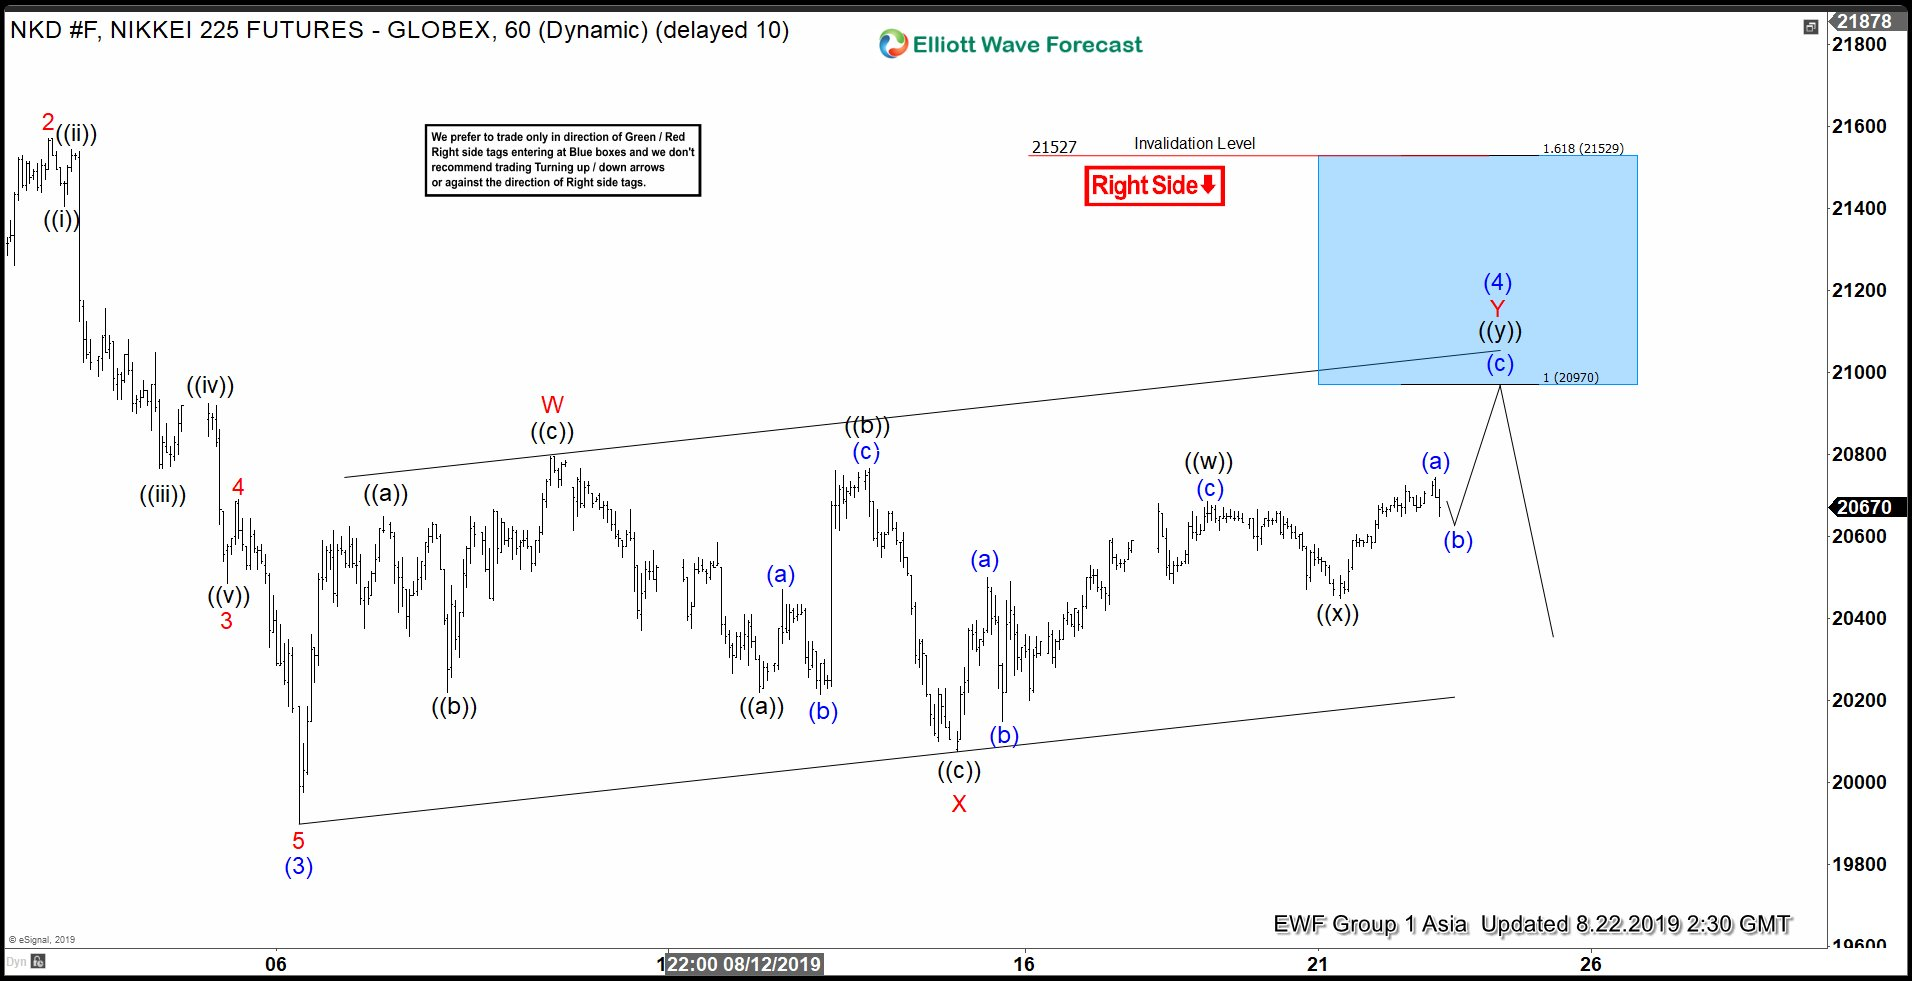 Elliott Wave View: Nikkei Looking for More Downside